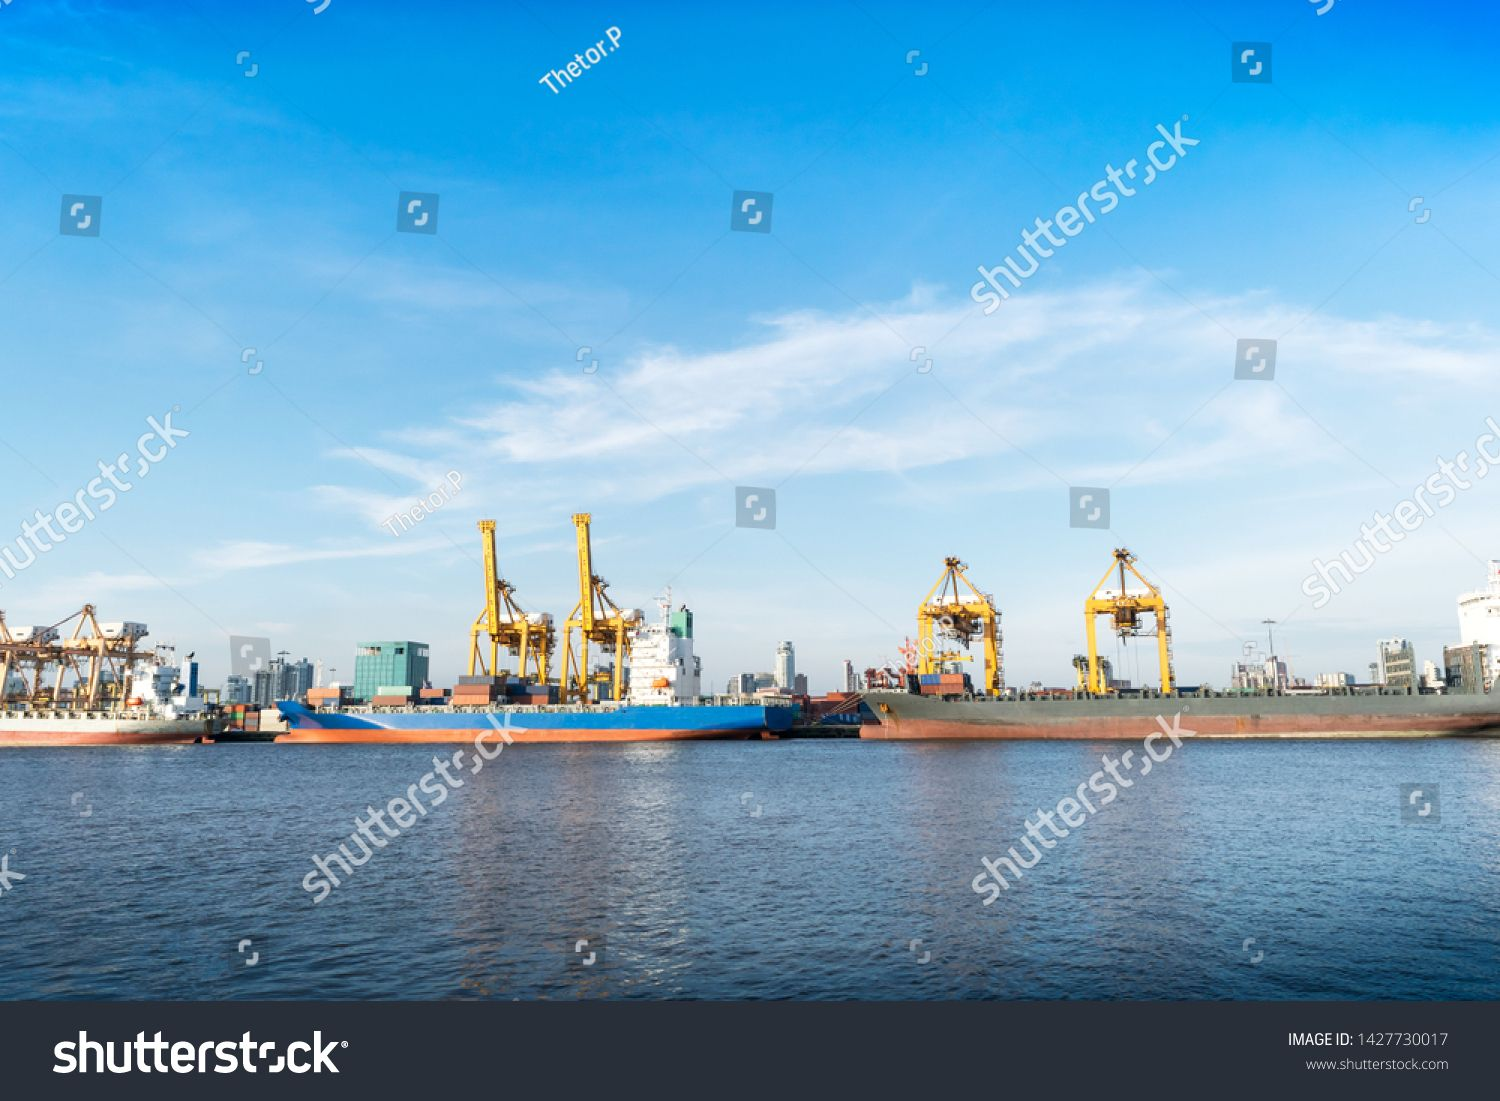 Transportation Of Oil Natural Gas Waterways By Transport Vessels Sponsored Sponsored Natural Oil Transportation Gas In 2020 Nature Waterway Stock Photos